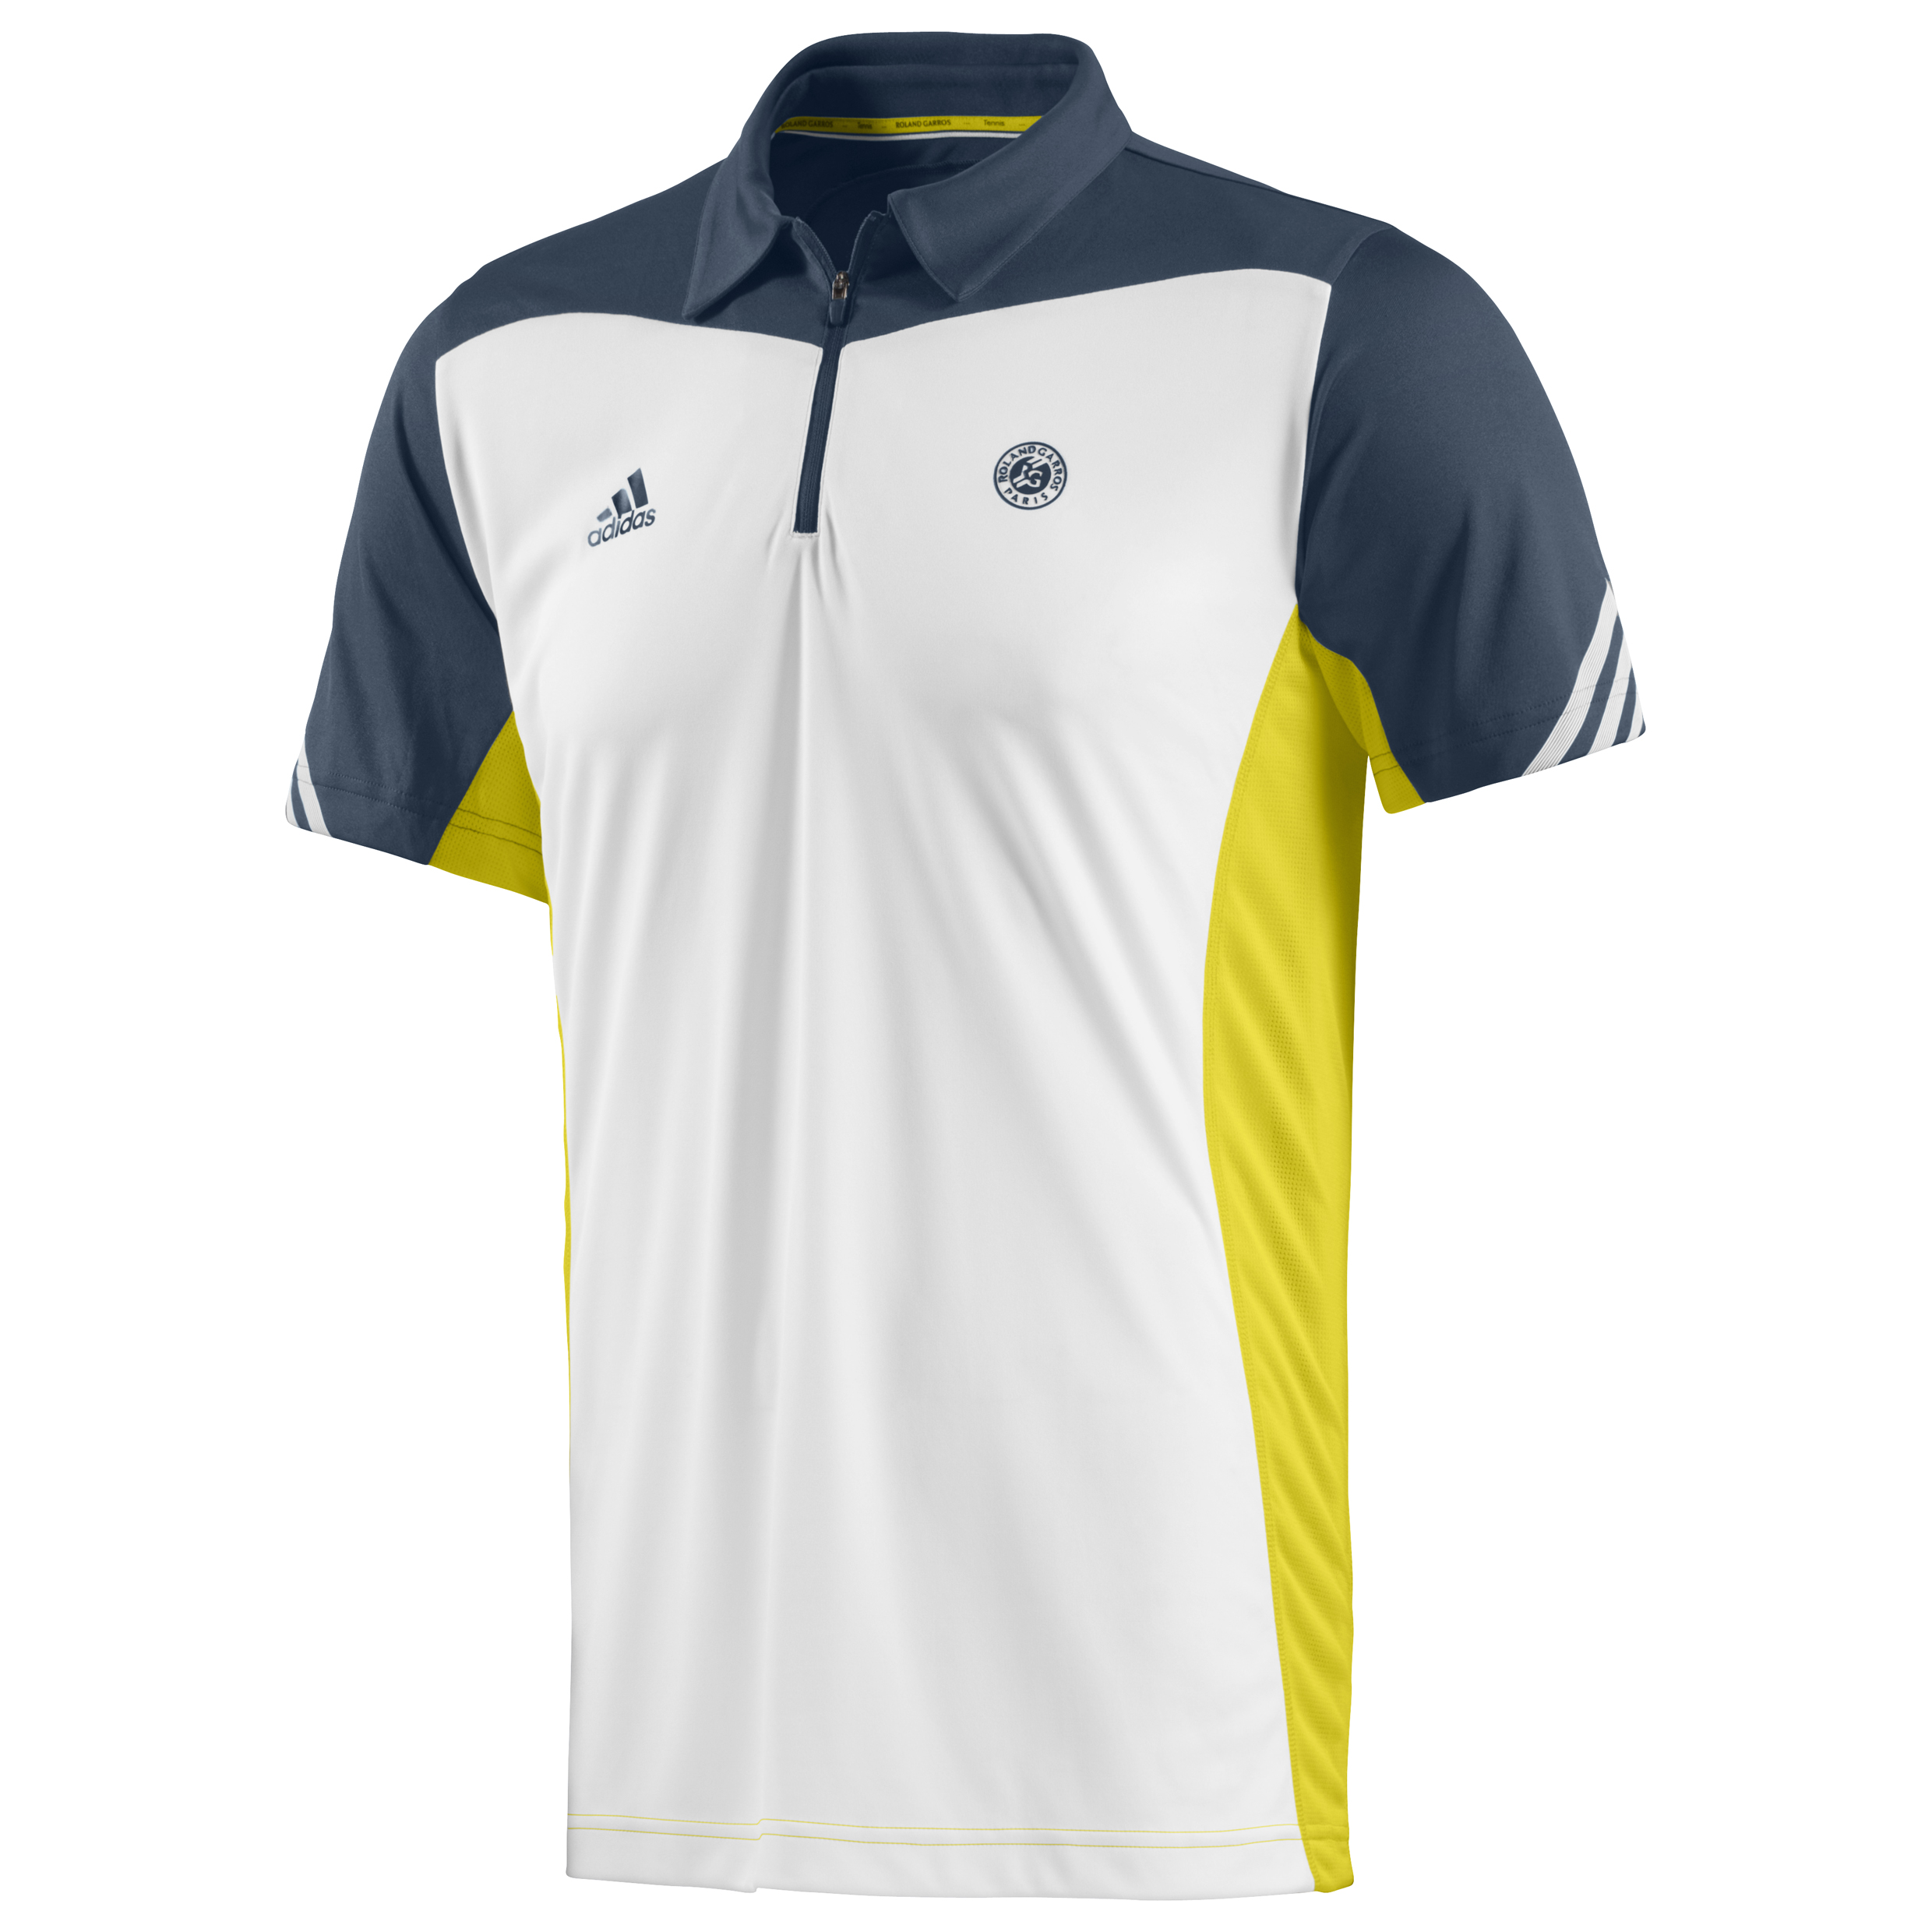 Roland-Garros On Court Polo - Mens White